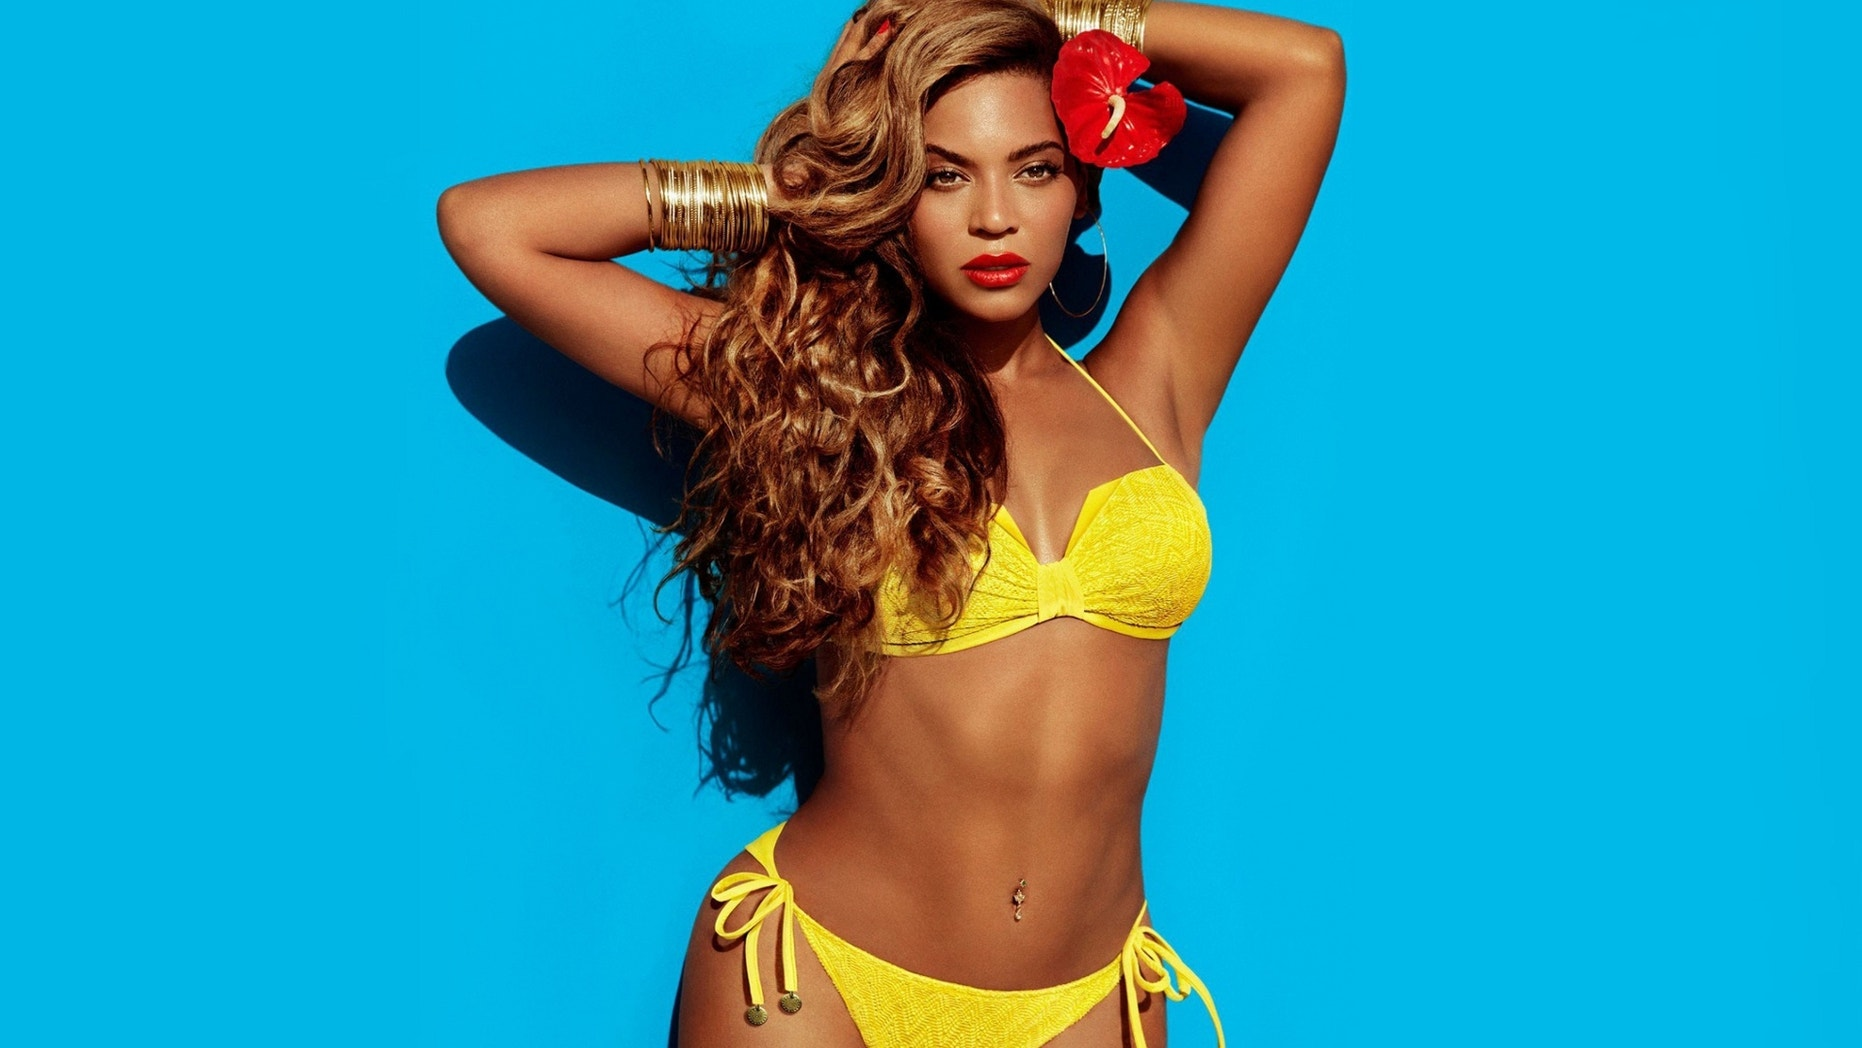 Beyonce poses in an ad for H&M.